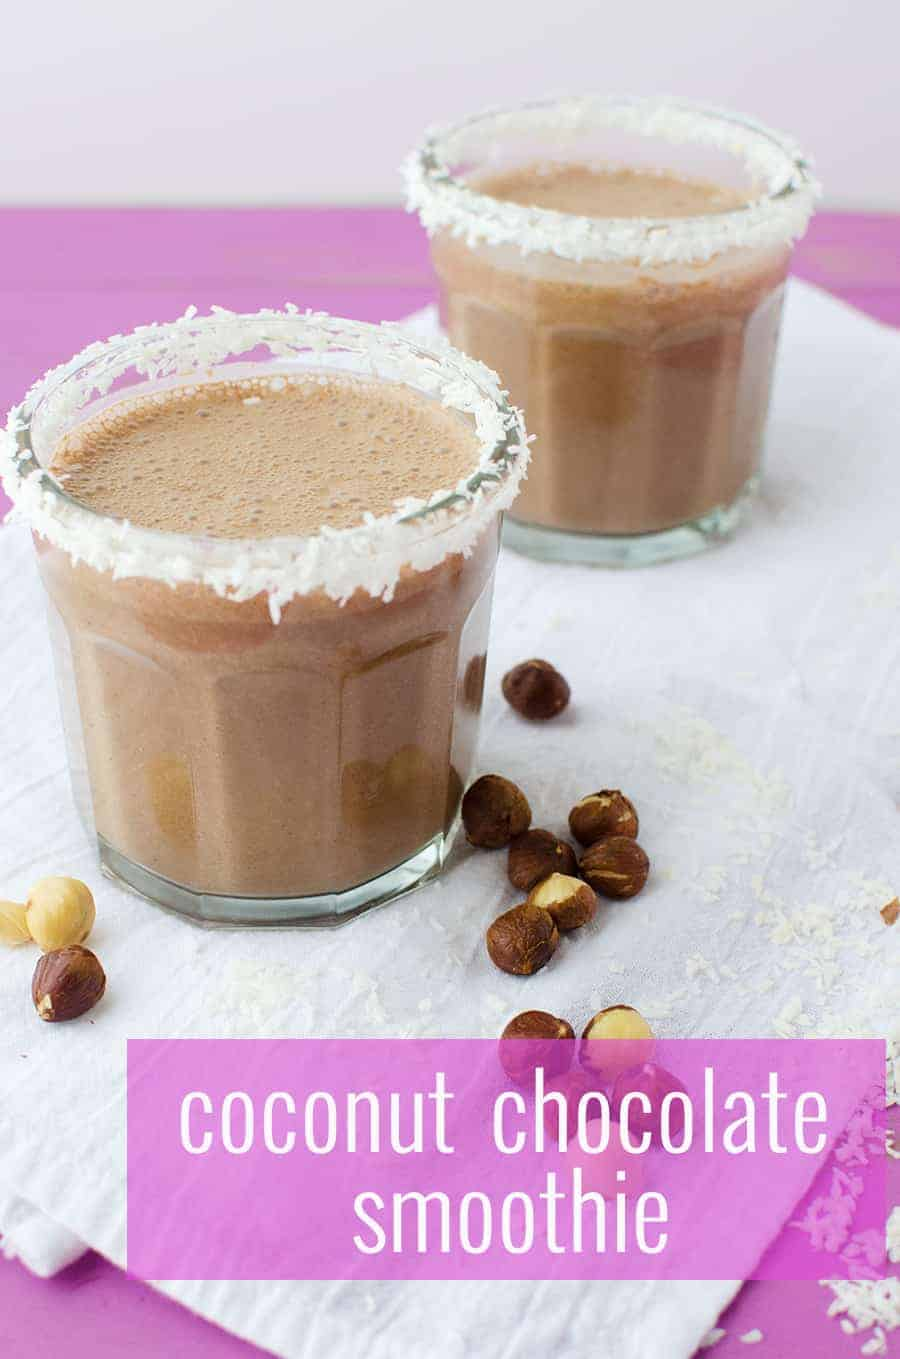 Coconut Chocolate Smoothie! Tastes like a Nutella milkshake- without the dairy! Vegan, gluten-free and naturally sweetened. | www.delishknowledge.com